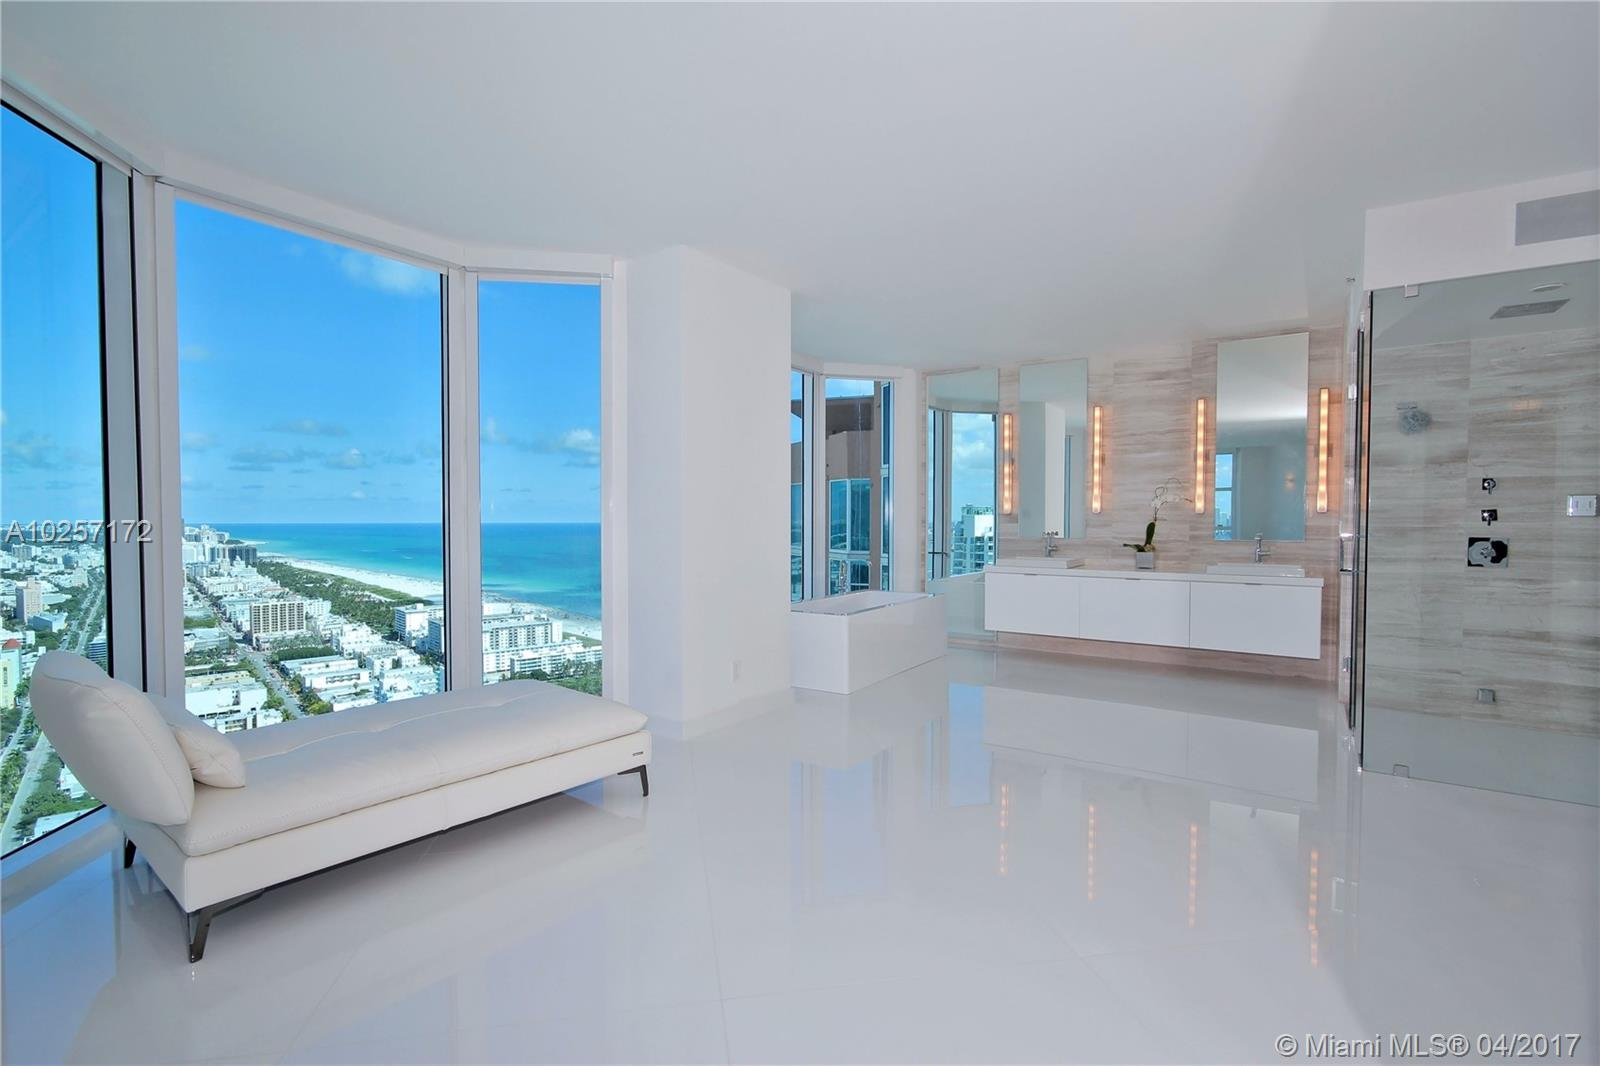 300 Pointe dr-LPH2 miami-beach--fl-33139-a10257172-Pic19